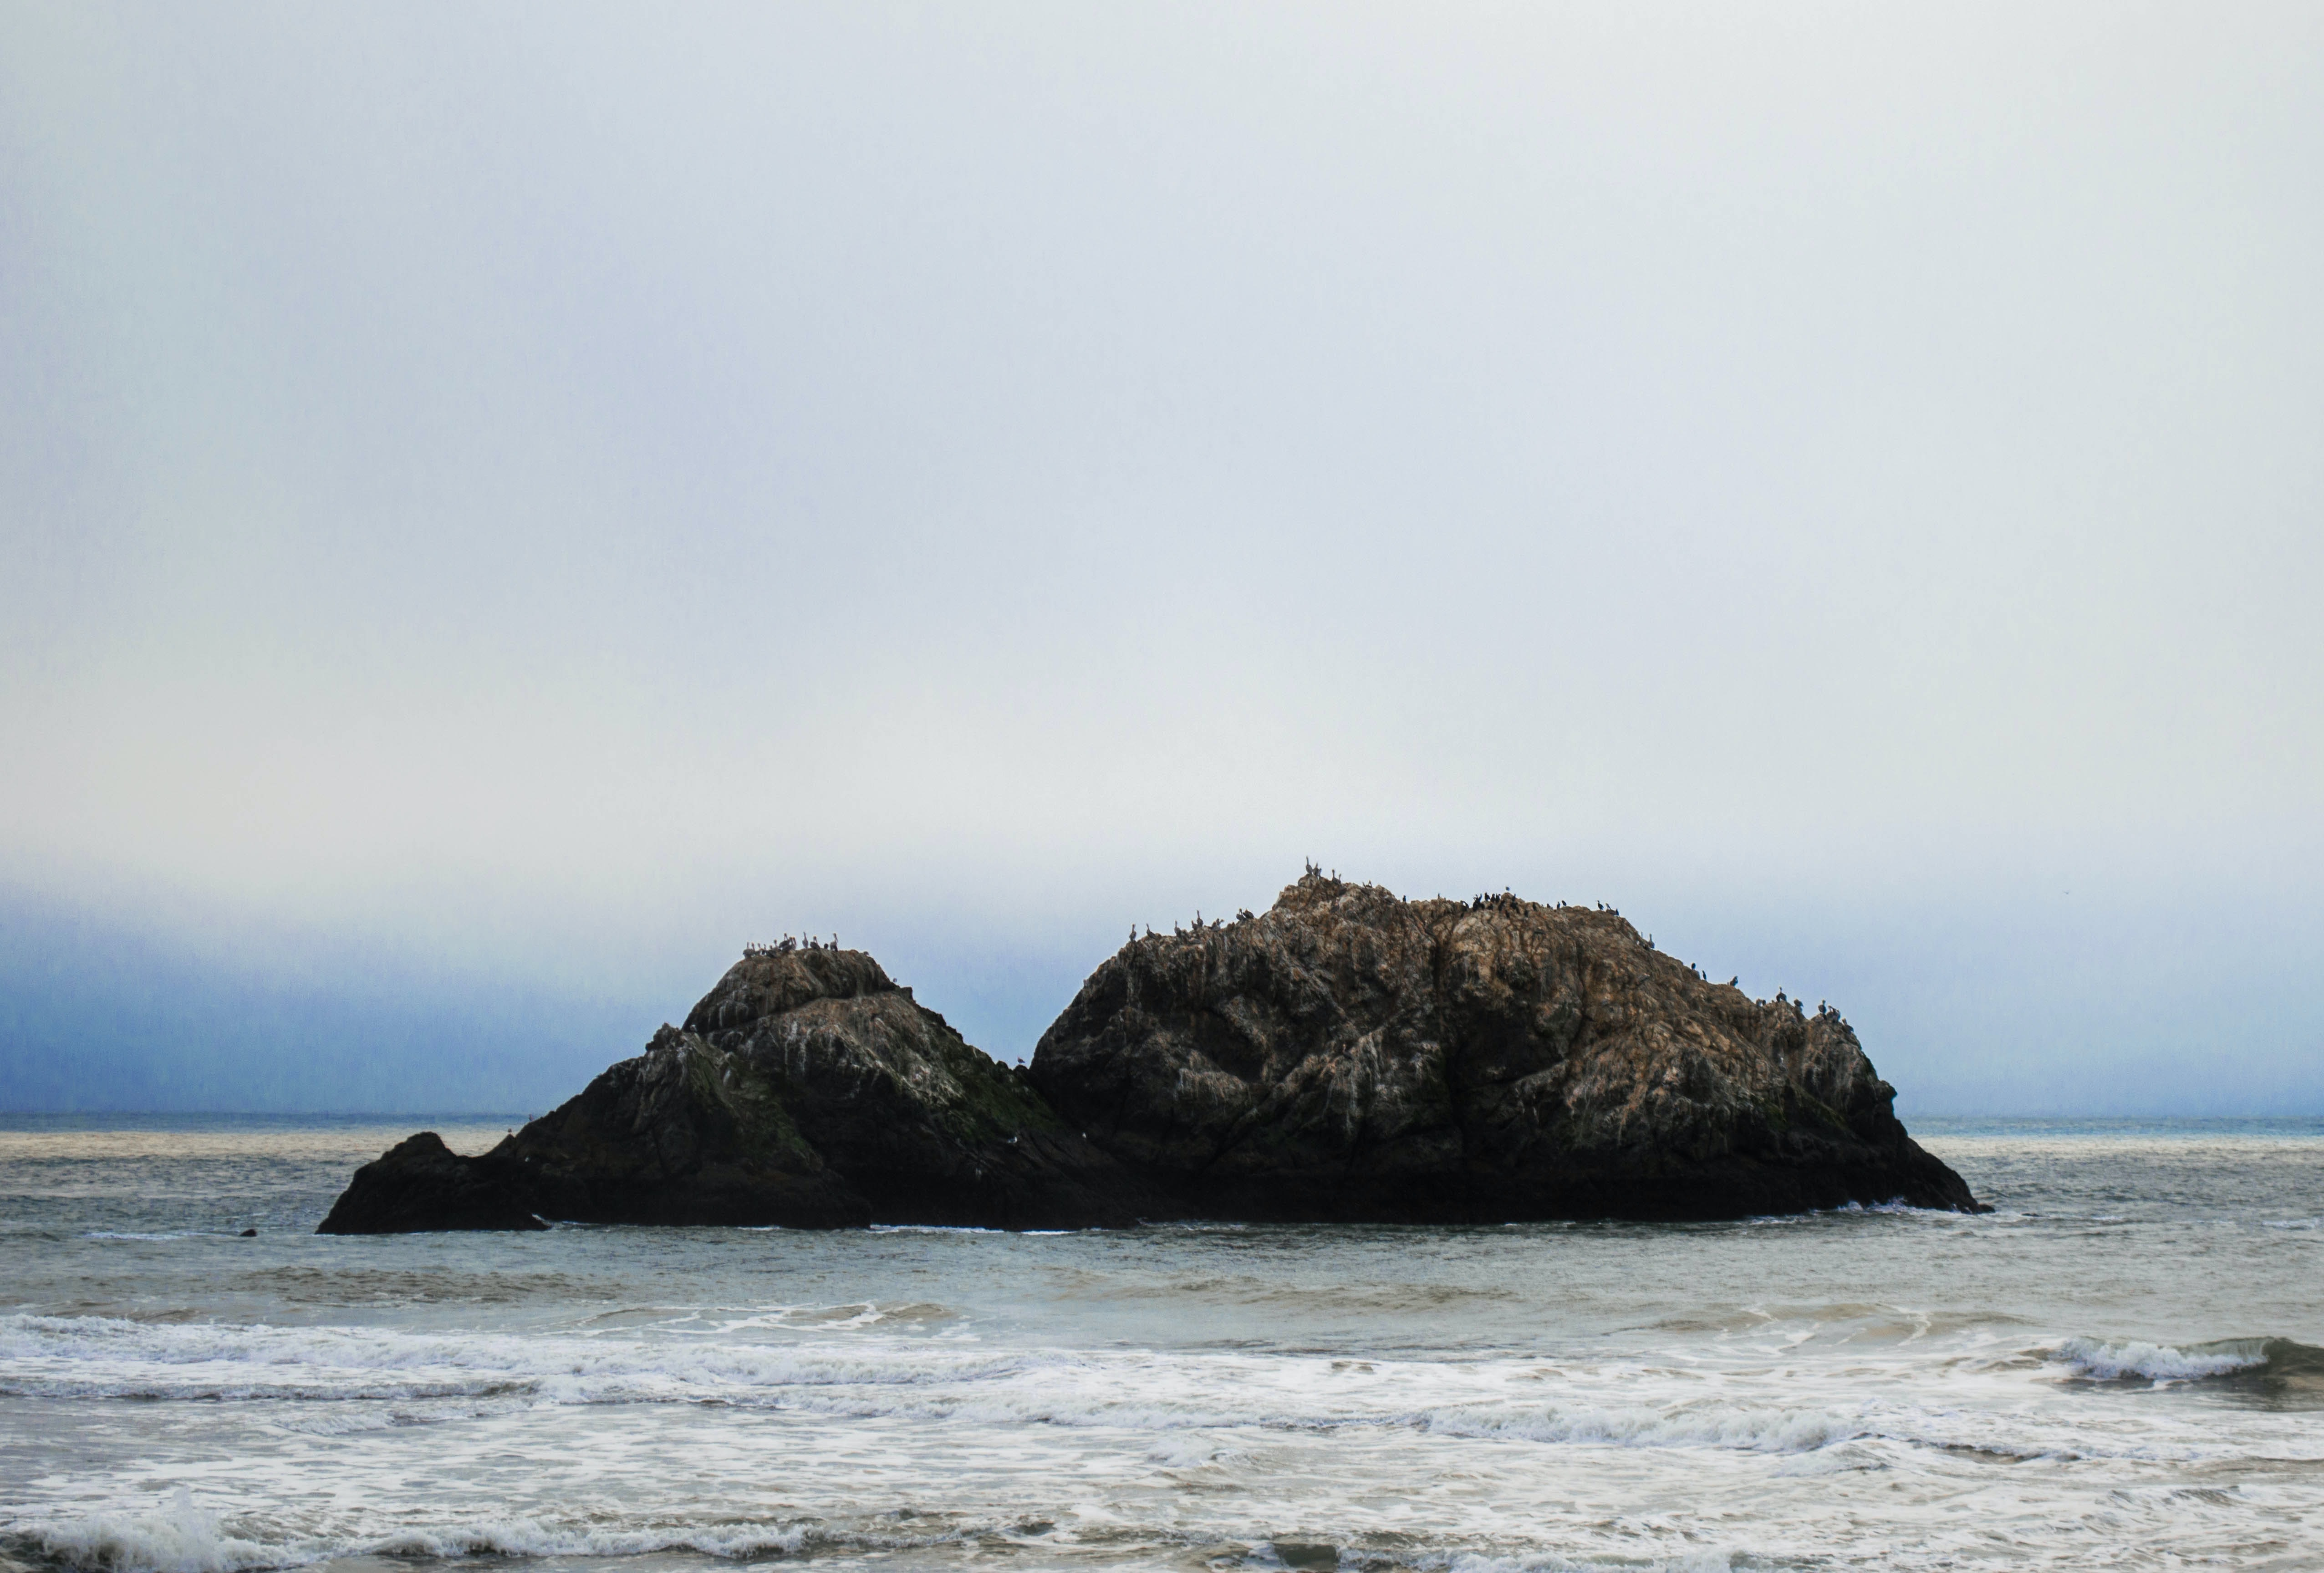 A rocky outcrop in the middle of a rough see